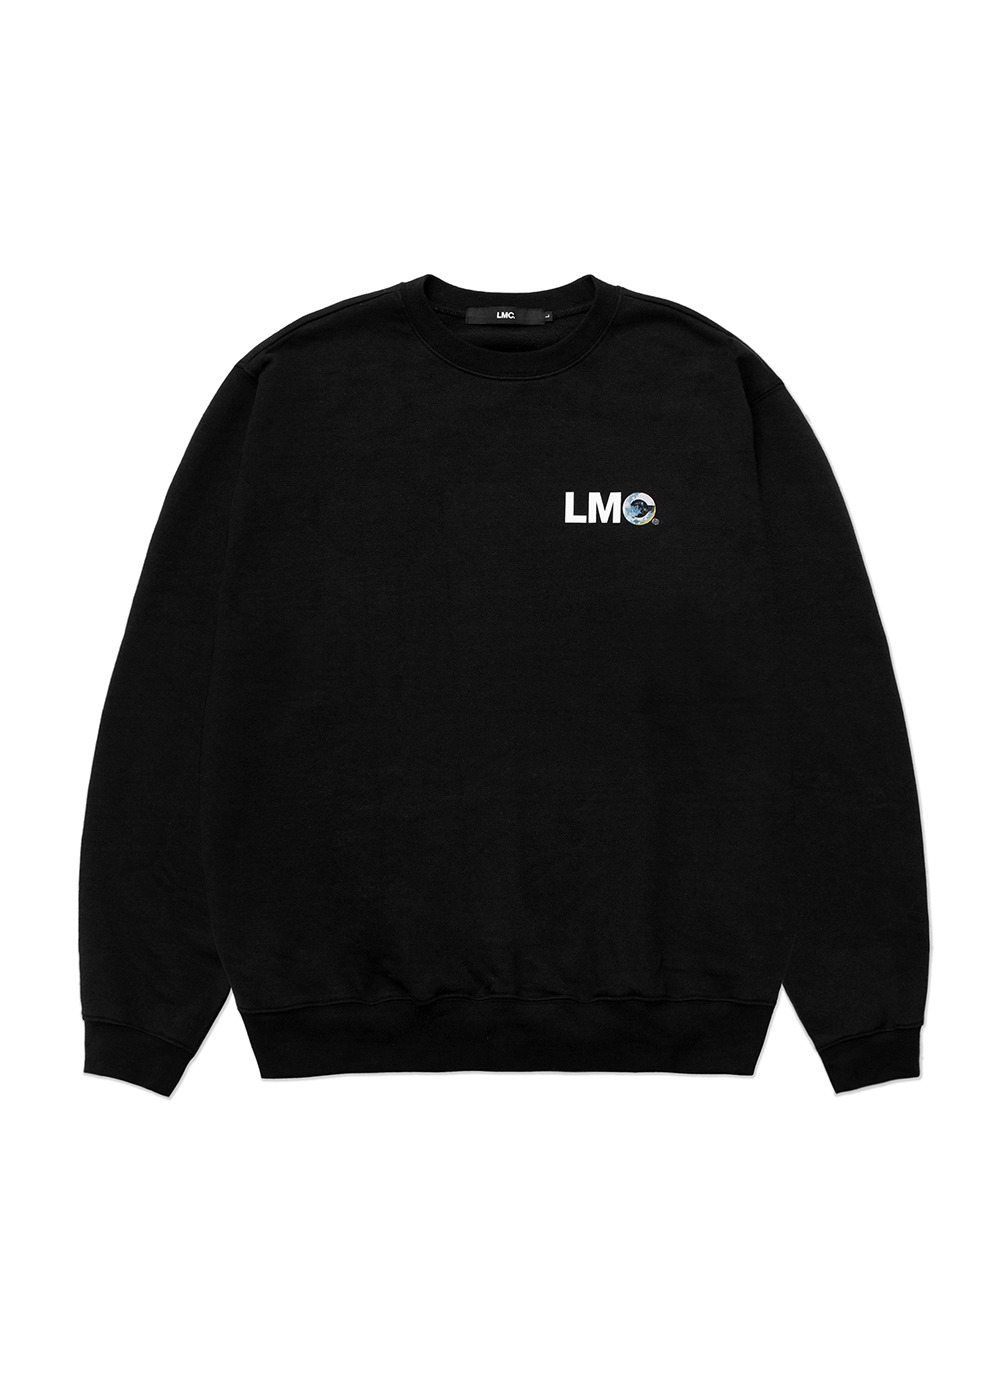 LMC MOON SWEATSHIRT black